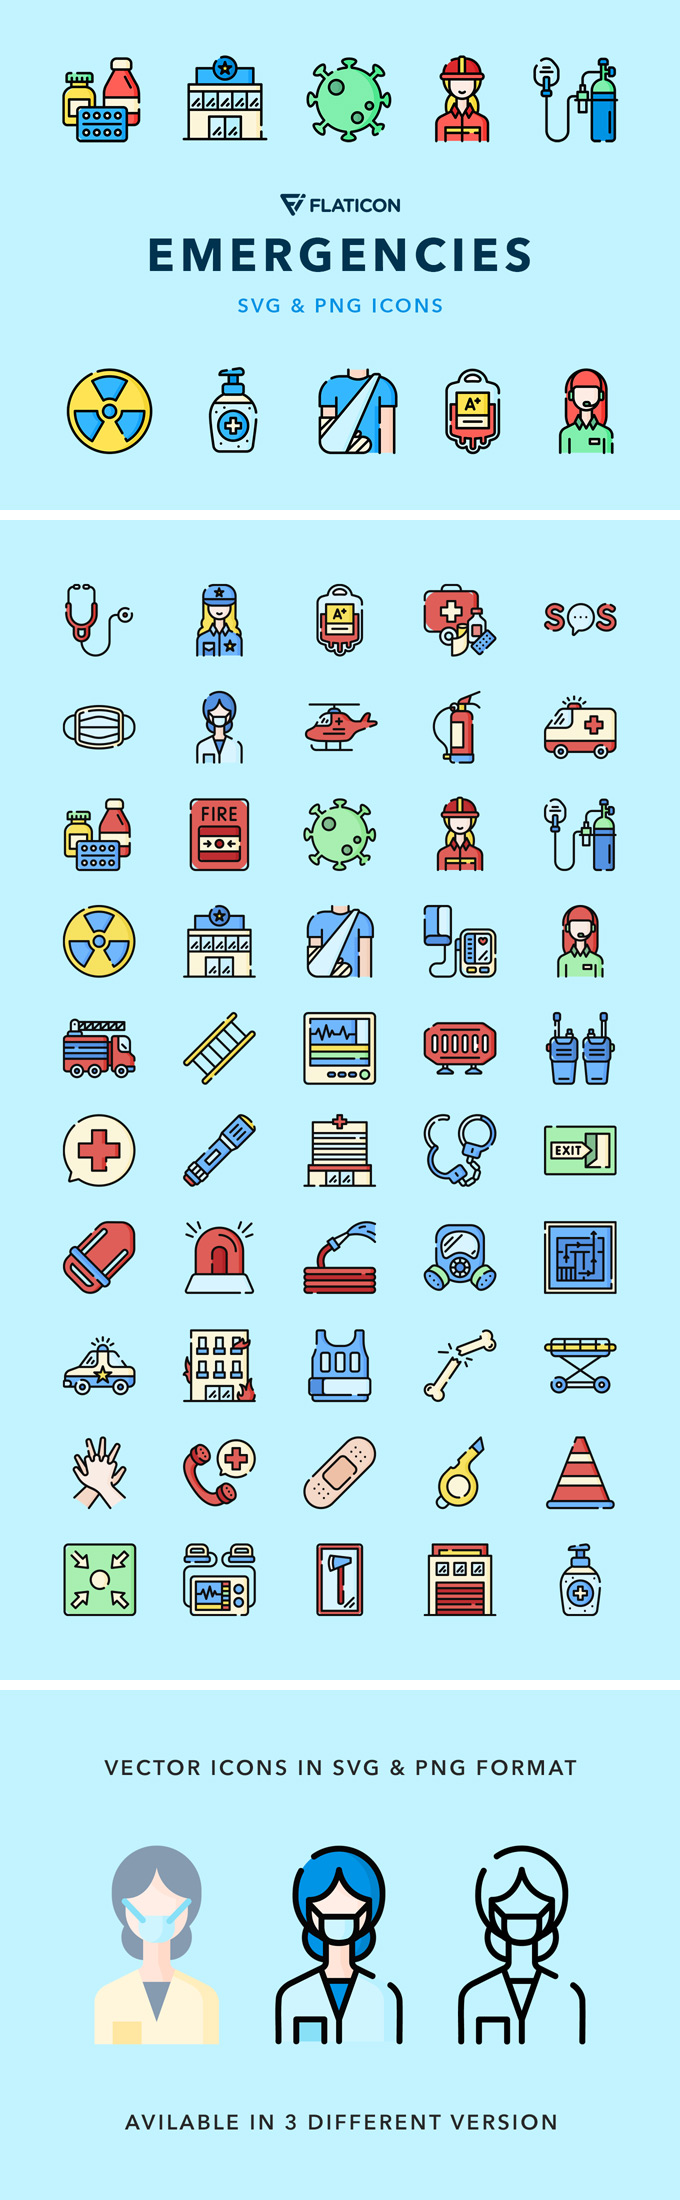 Emergencies Vector Icons (3 Versions, SVG, PNG)